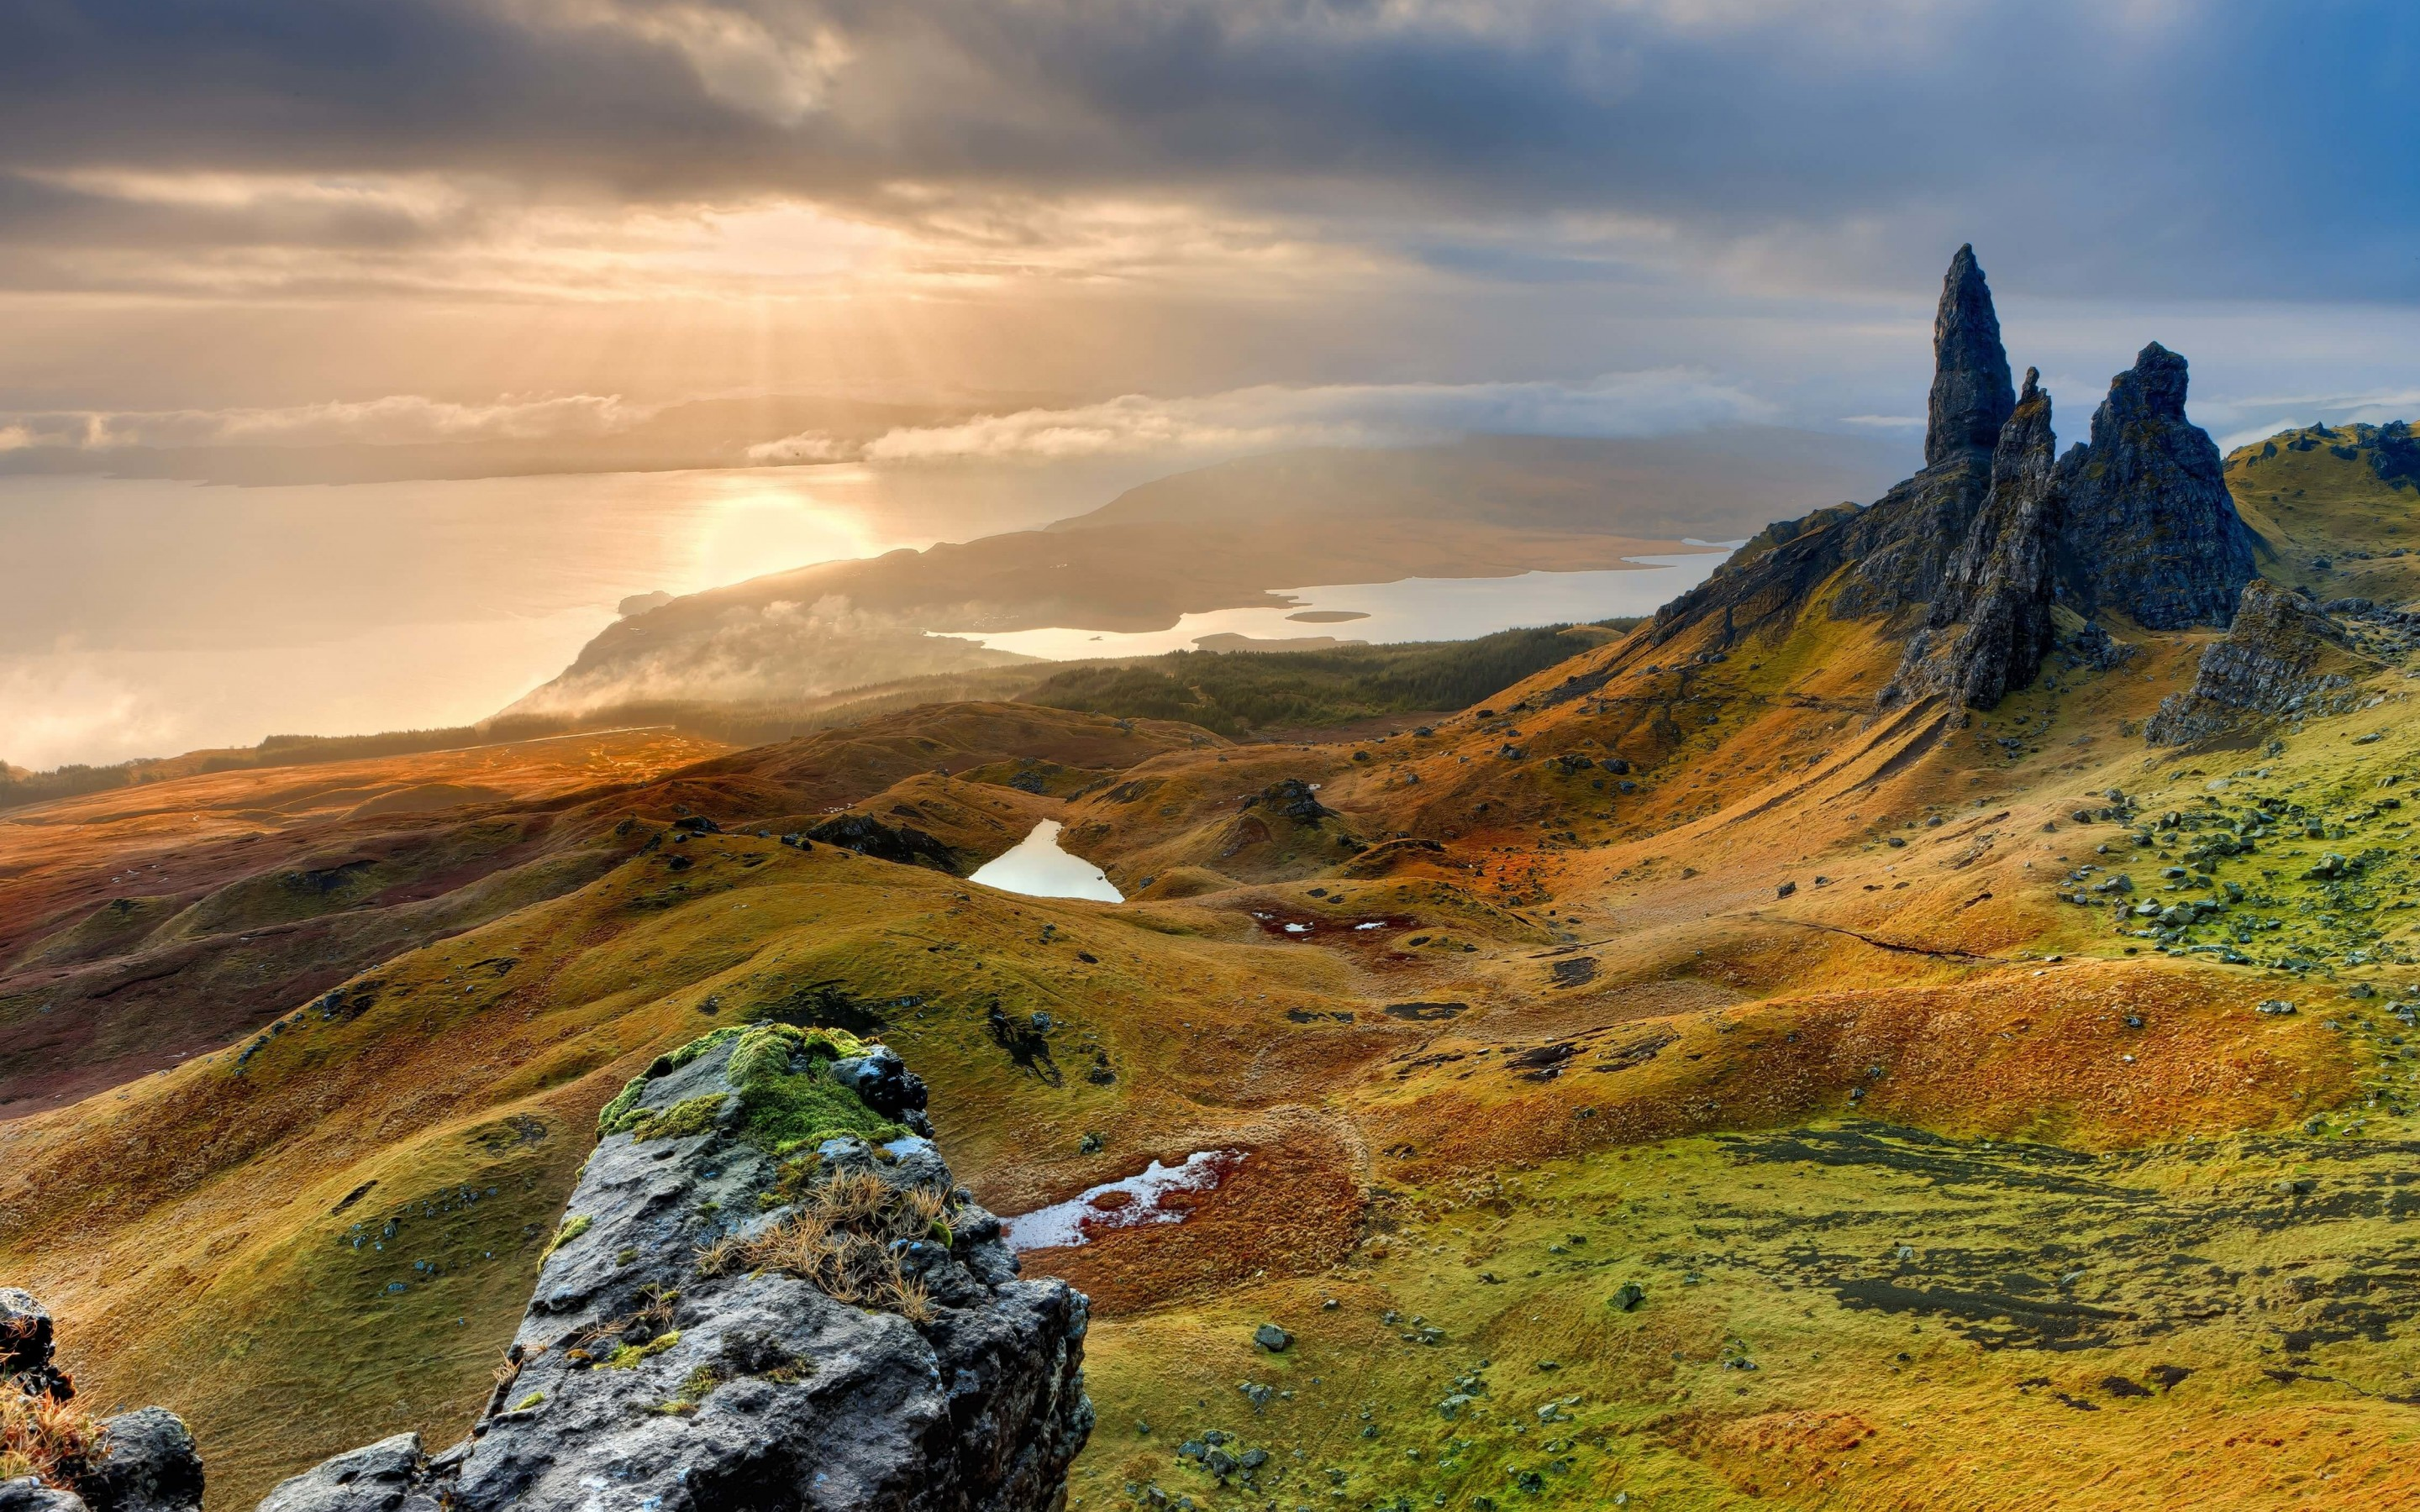 The Old Man of Storr, Isle of Skye, Scotland Wallpaper for Desktop 2880x1800